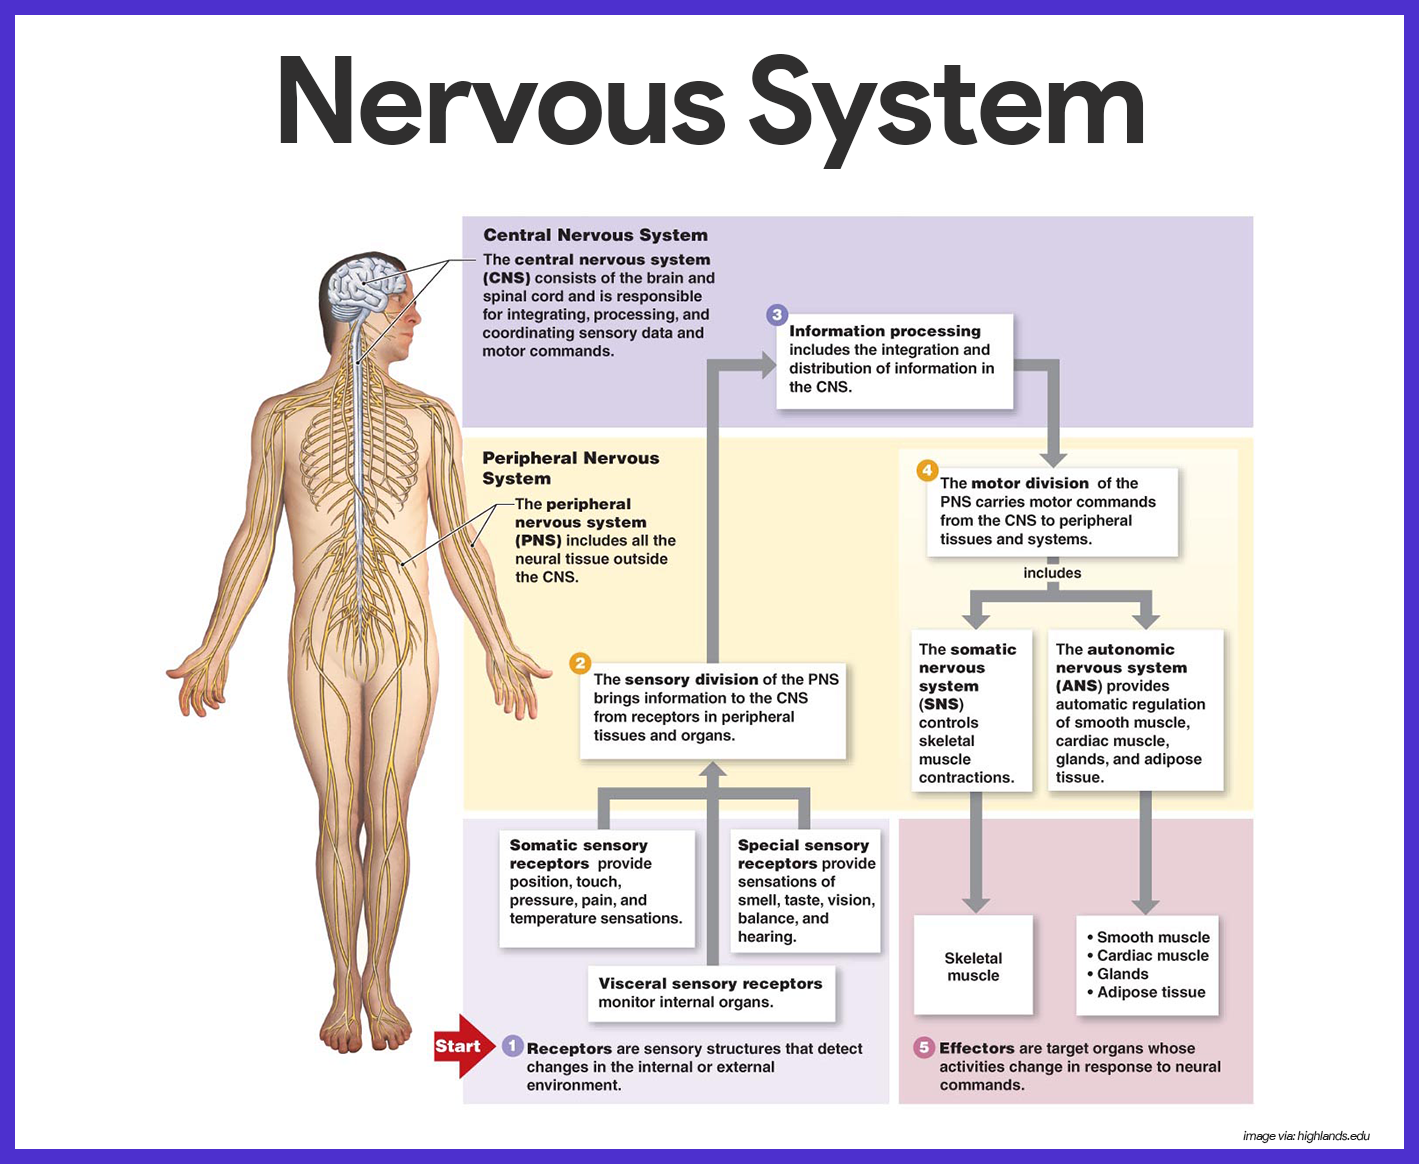 Nervous System Anatomy And Physiology Nervous System Anatomy Nervous System Diagram Peripheral Nervous System